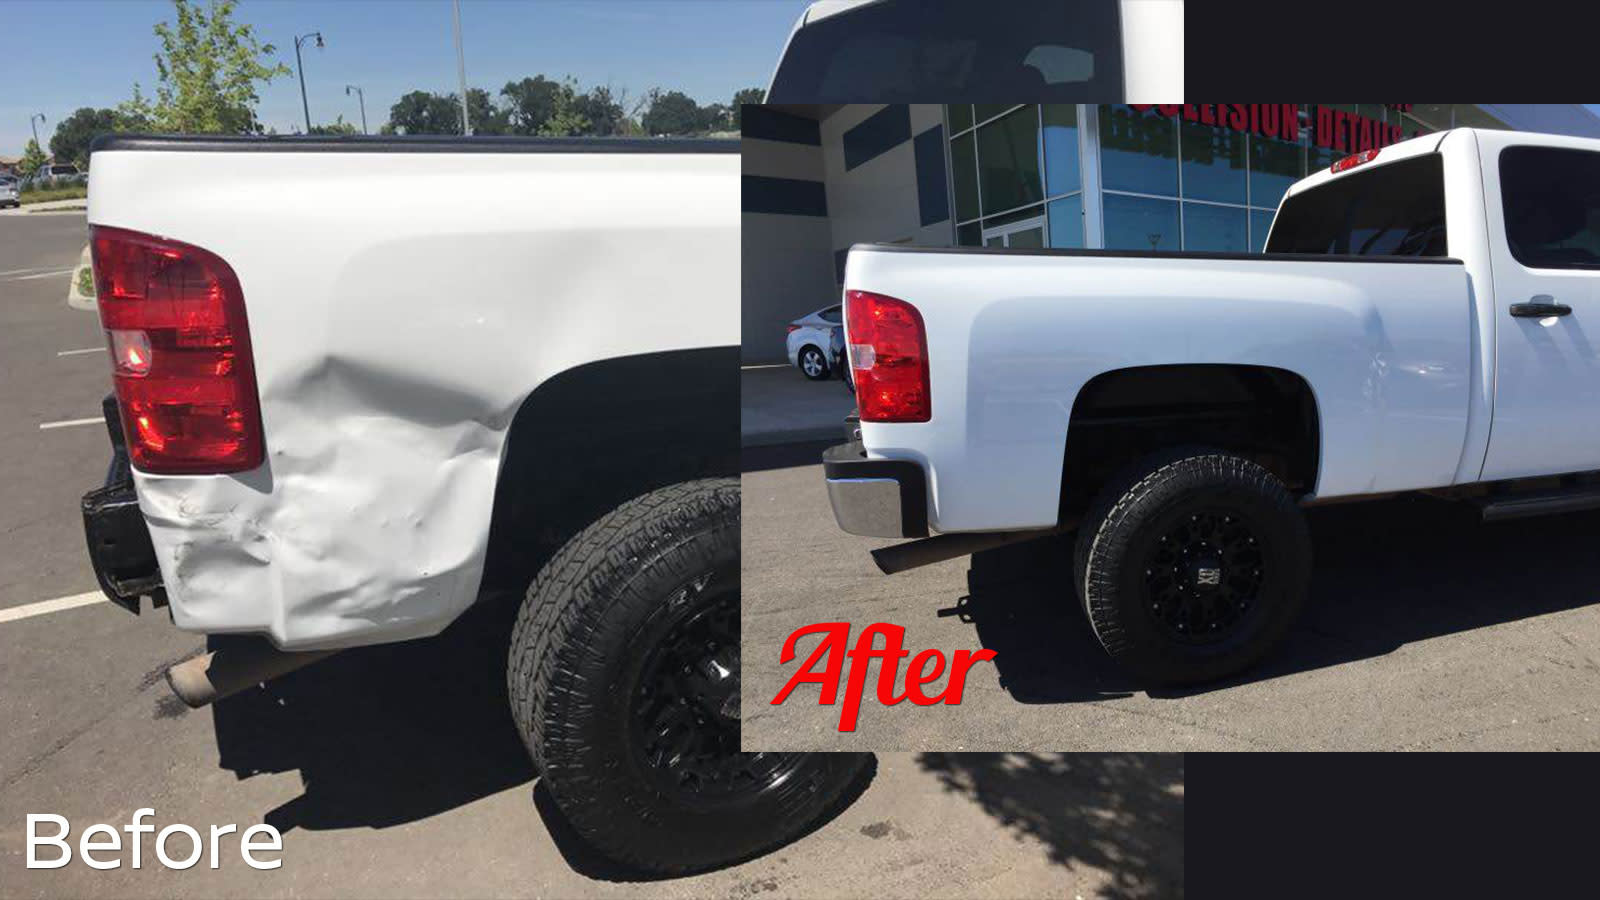 Before and After truck damaged photos